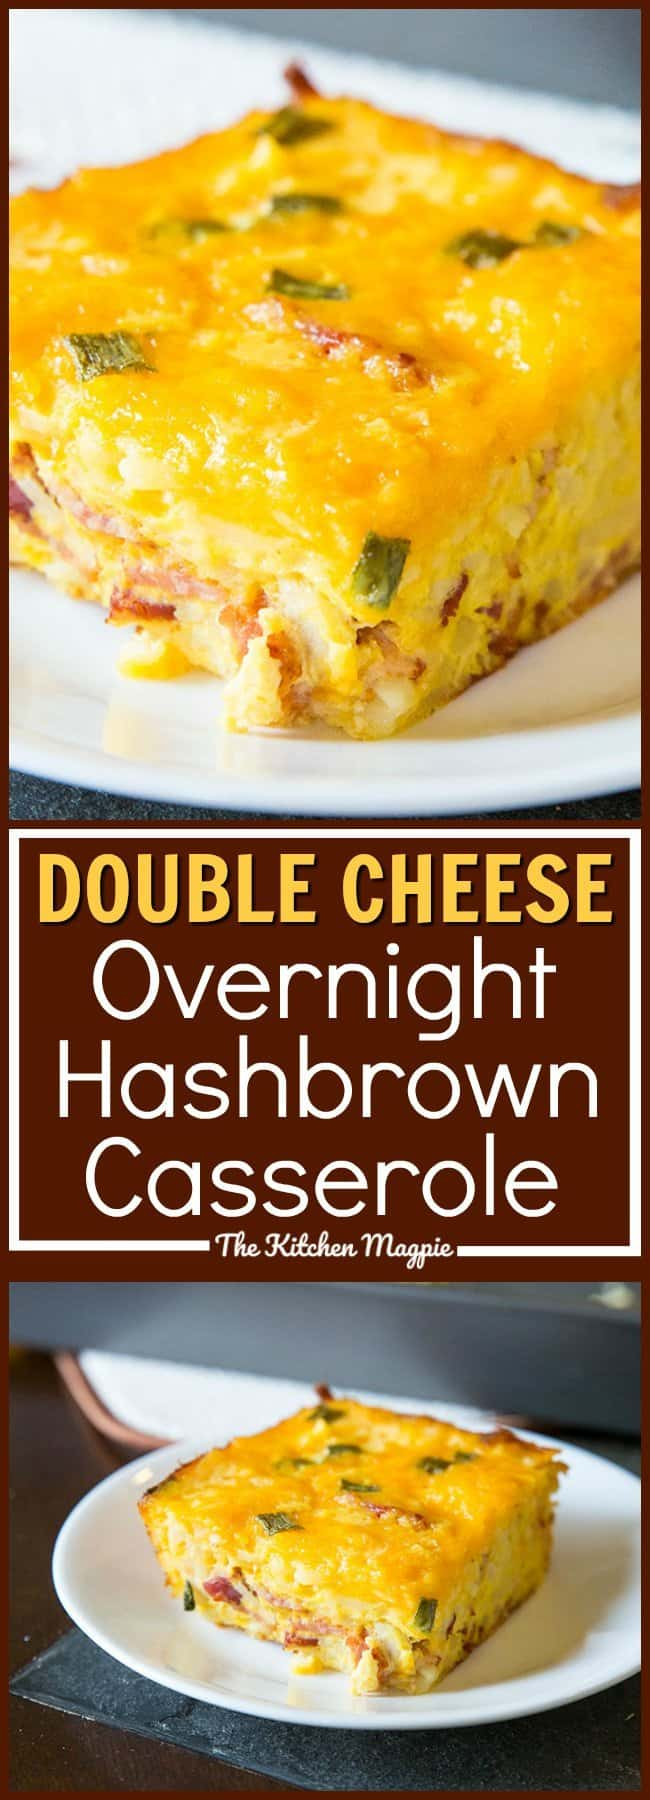 Double Cheese Overnight Breakfast Hashbrown Casserole! Make it the night before and bake it up for the family for breakfast! Recipe from @kitchenmagpie. #breakfast #recipe #hashbrowns #cheesee #casserole #makeahead